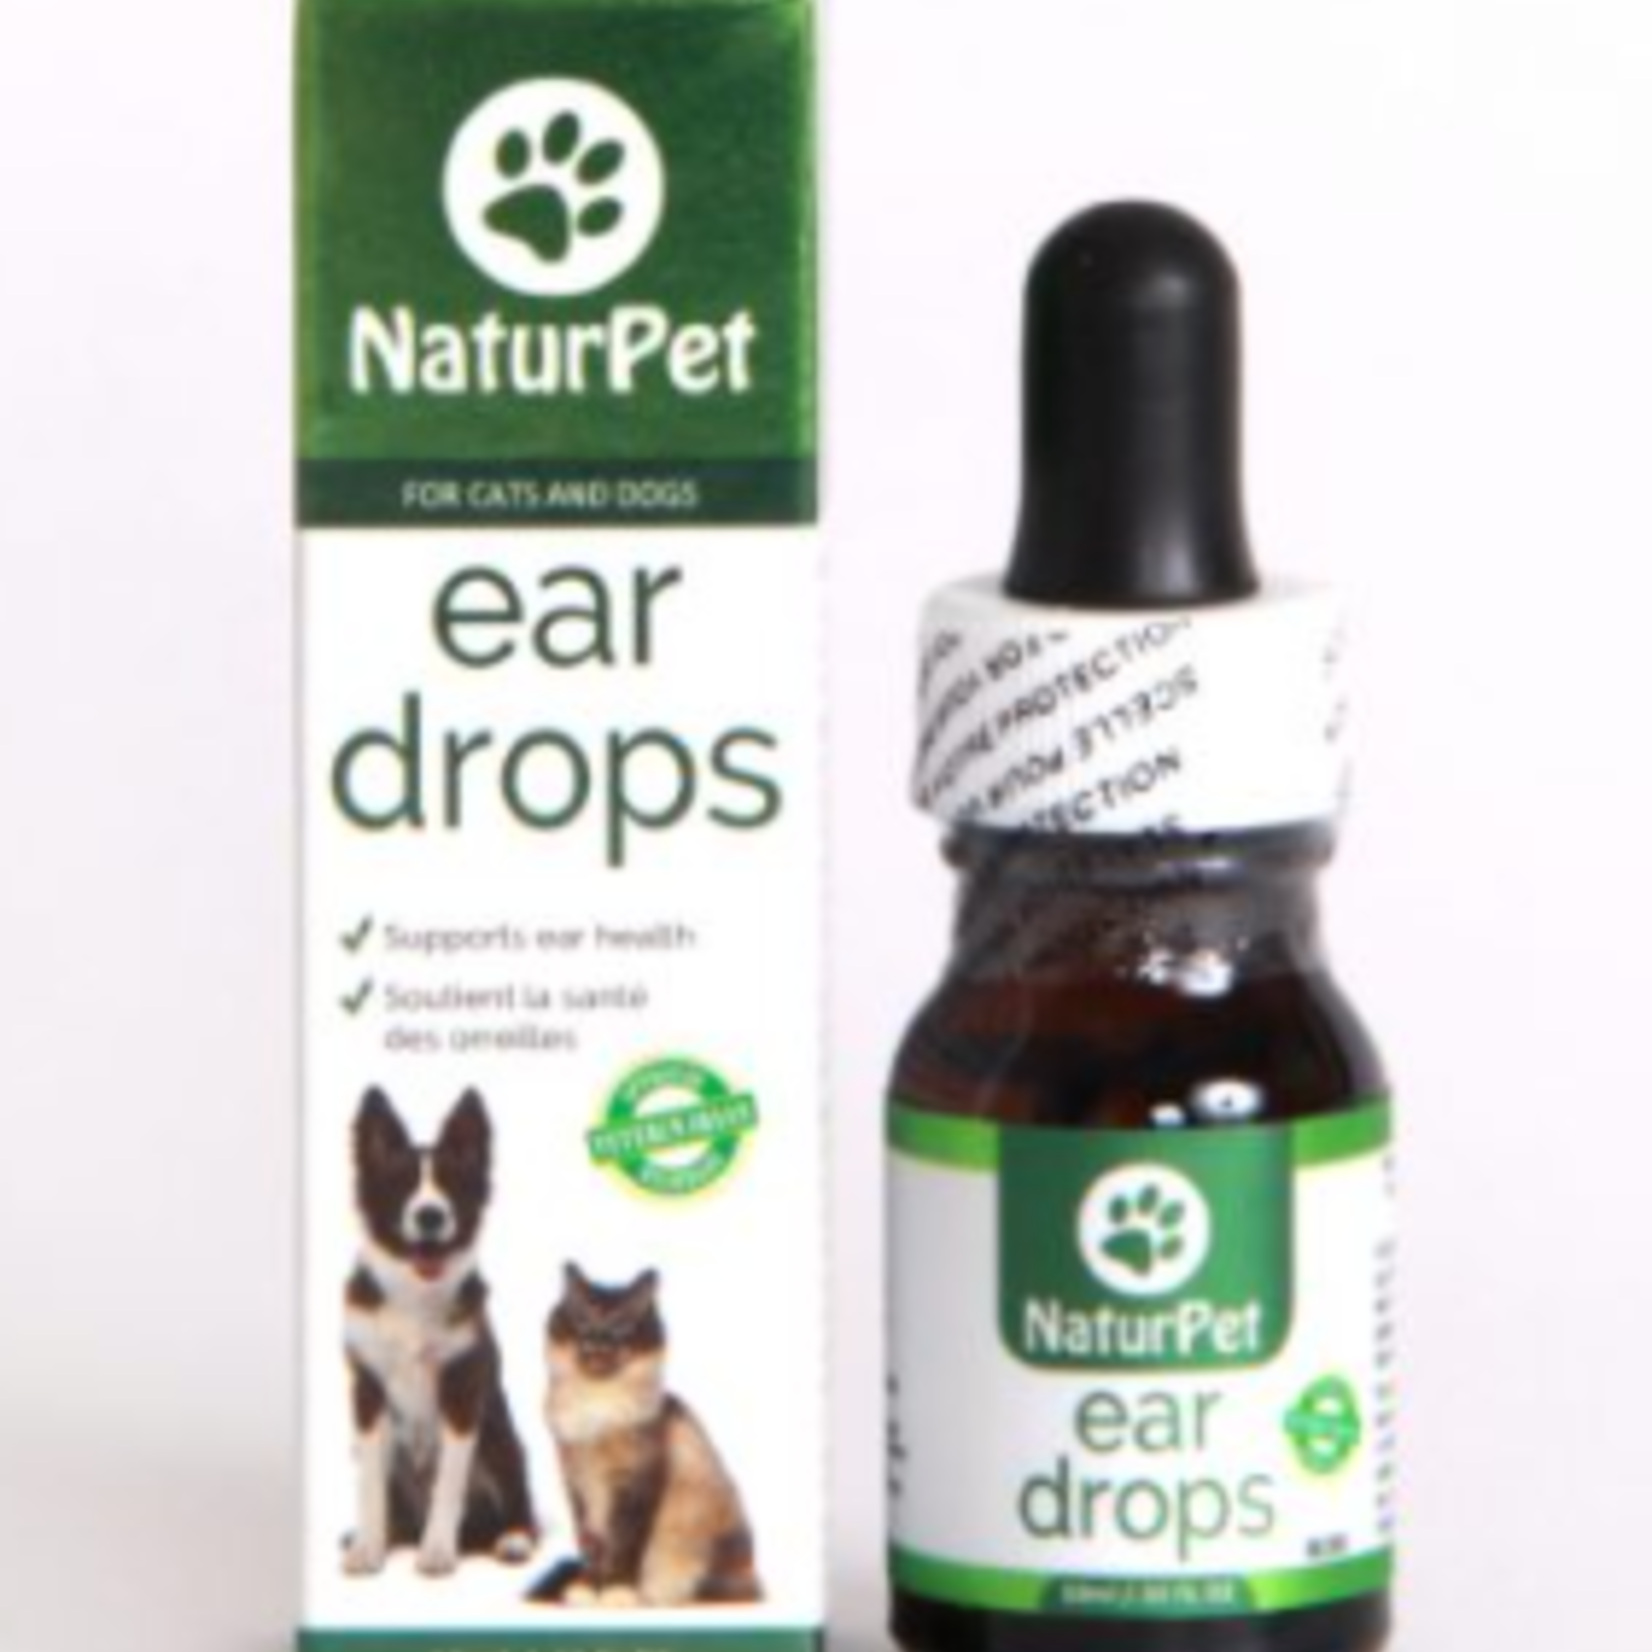 NaturPet Ear Drops for Dogs and Cats-All Natural